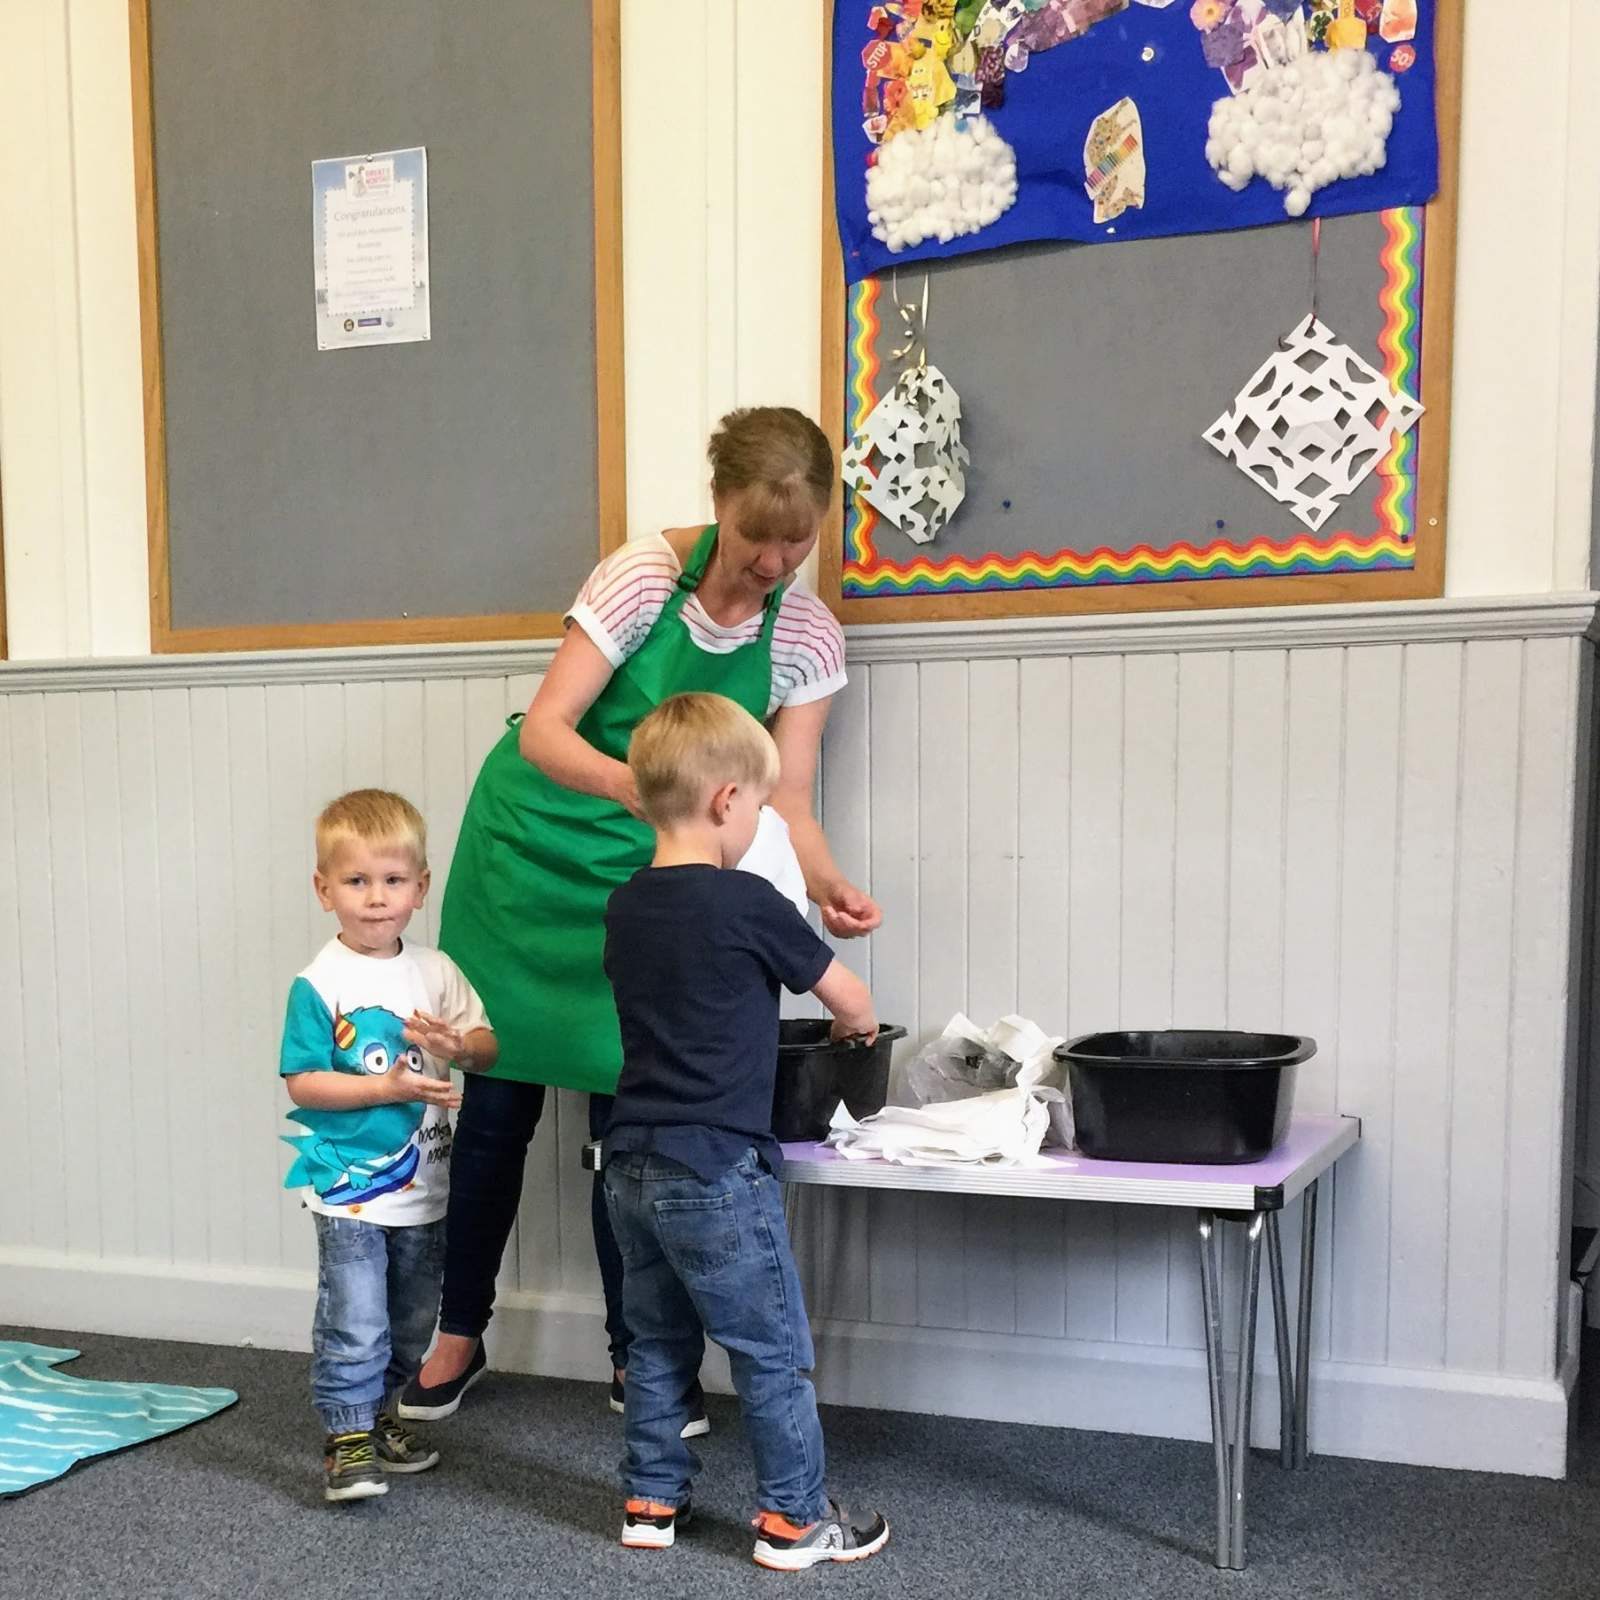 washing hands before cooking at Fun little foodies preschool classes whitley bay